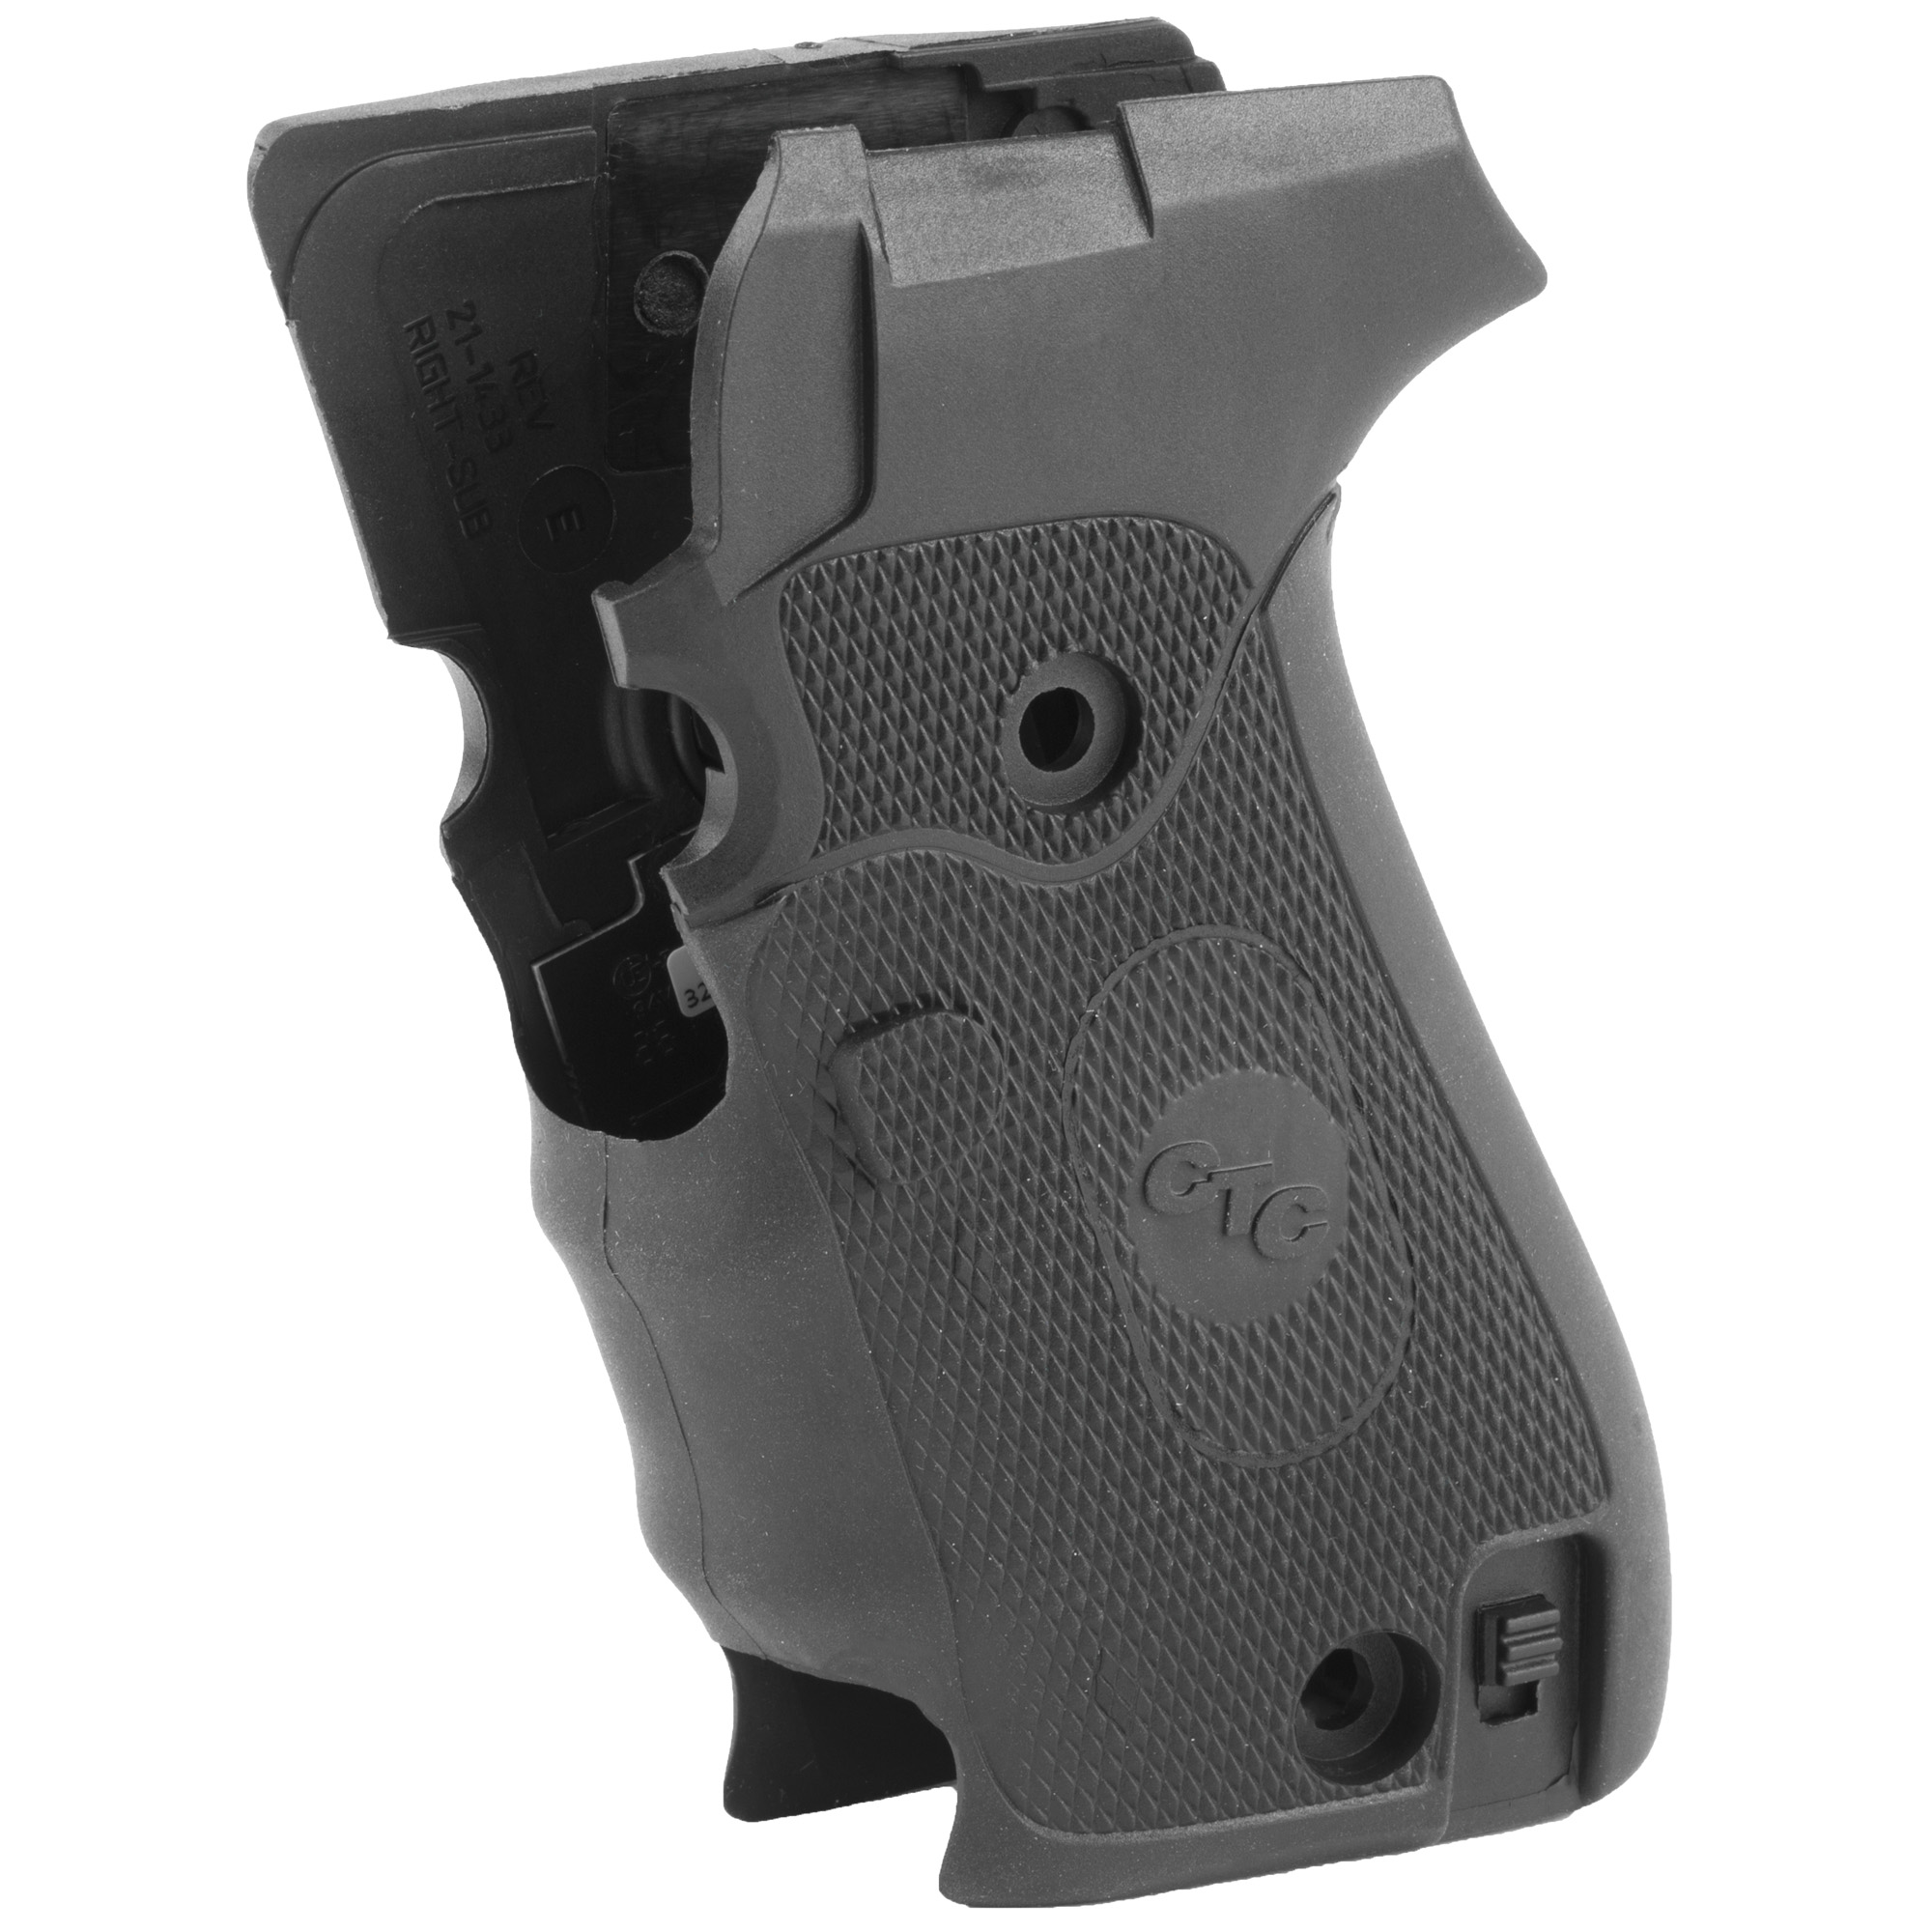 """LG-320 laser sights for Sig Sauer P220 pistols feature a rubber overmold construction around a sturdy polymer-grip frame. Providing great comfort and ergonomics"""" this grip features dual side activation allowing the laser to instinctively spring to life when the weapon is hold in a normal firing grip. The Crimson Trace LG-320 Lasergrip(R) further enhances the defensive capabilities of one of the most widely used and trusted professional and personal carry pistols in the world."""